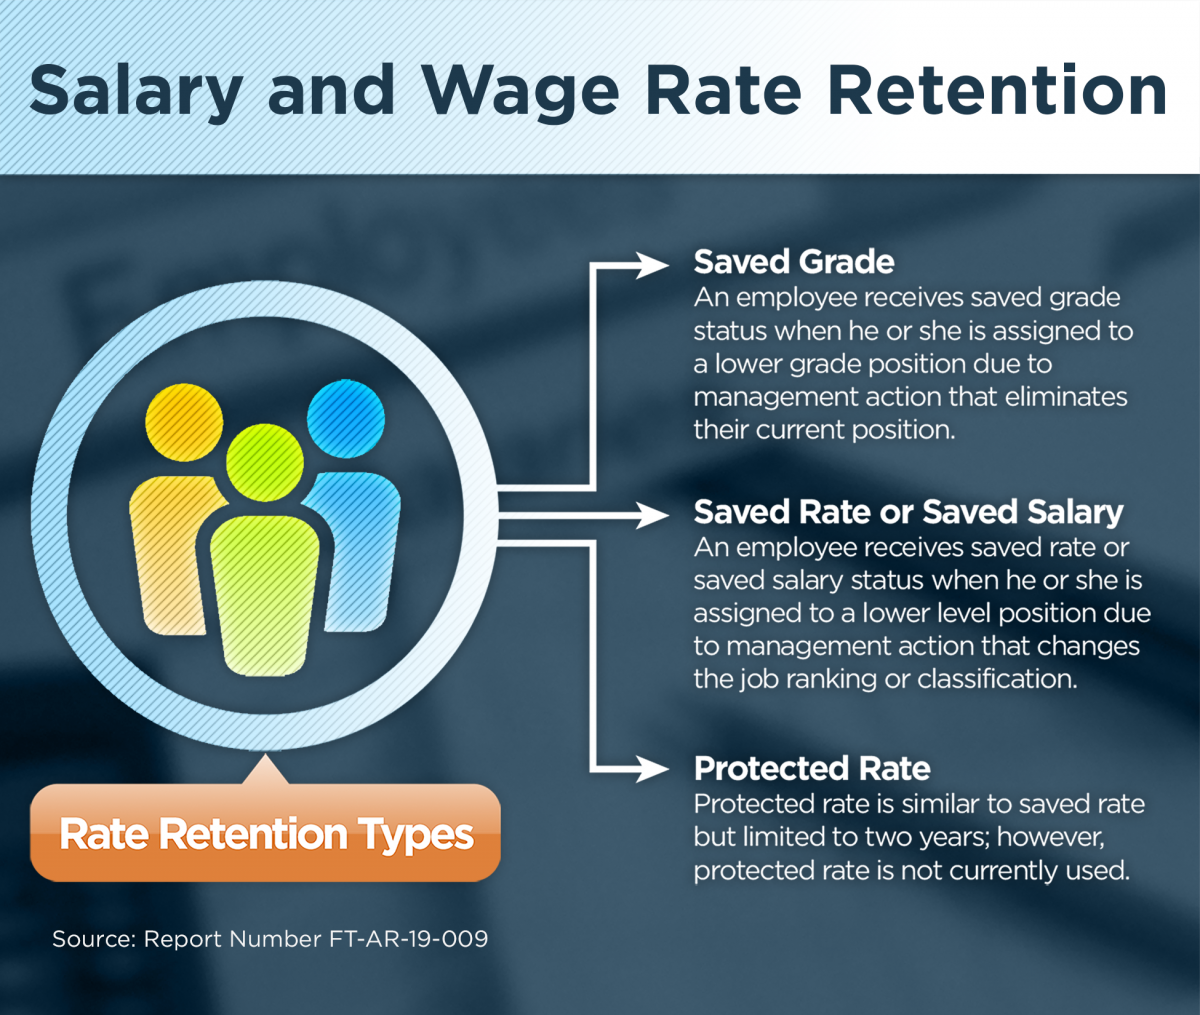 Salary and Wage Rate Retention